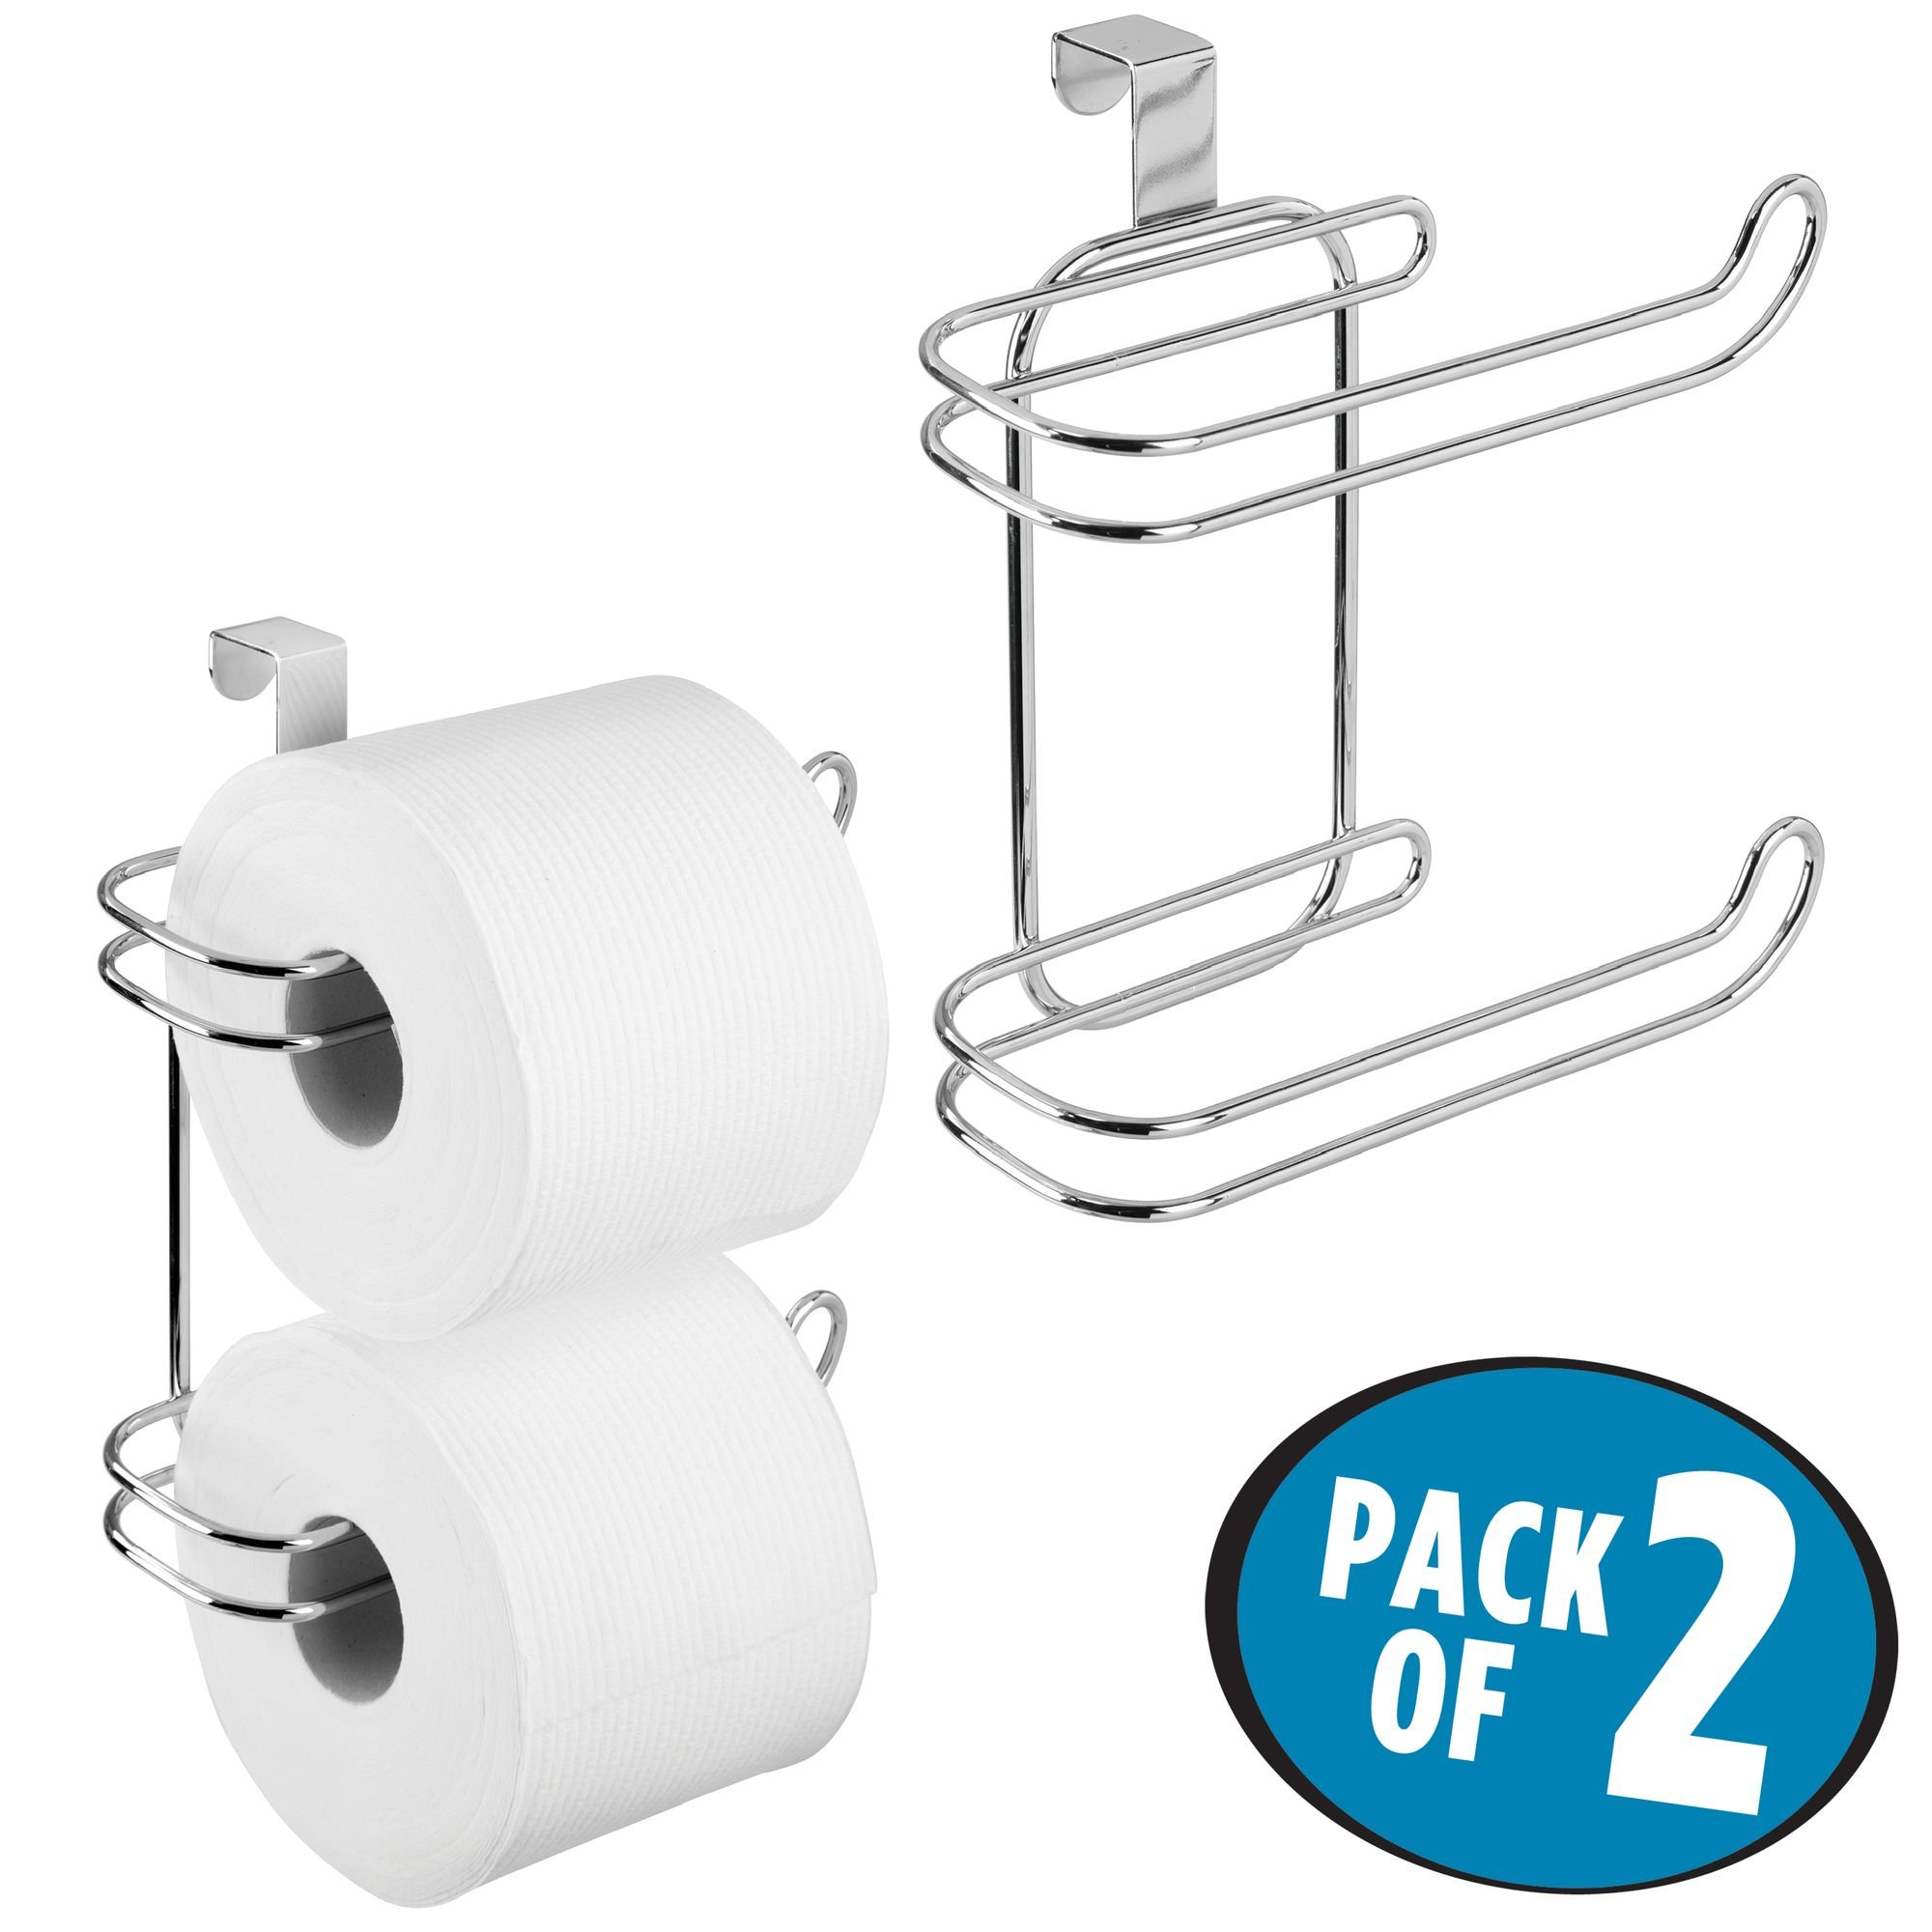 mDesign Compact Hanging Over the Tank Toilet Tissue Paper Roll Holder and Dispenser for Bathroom Storage - Holds 1 Extra Roll – Space Saving Design - Pack of 2, Durable Metal Wire in Chrome Finish